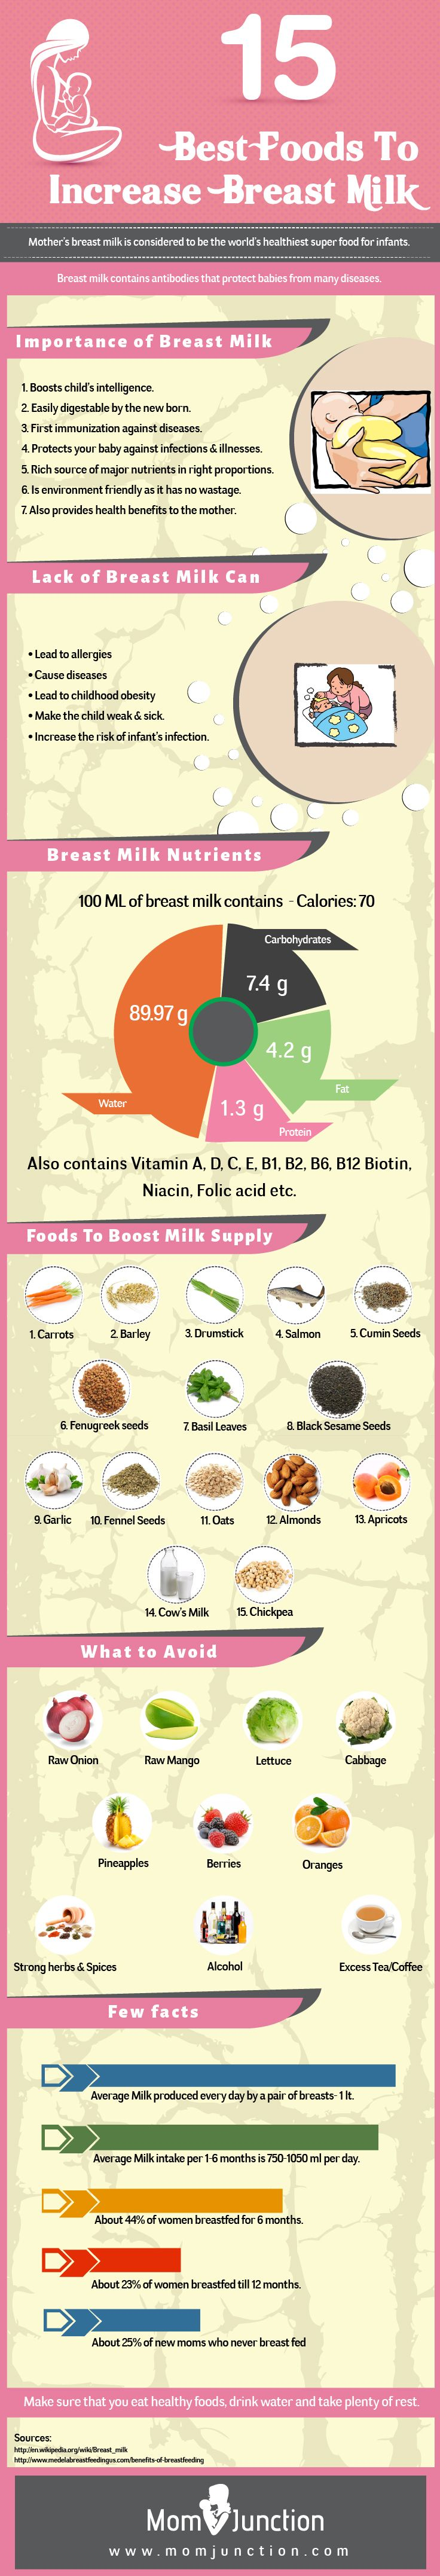 Are you able to produce enough breast milk for your baby? What are the foods that increase milk supply? Here we list 25 best foods to increase breast milk..